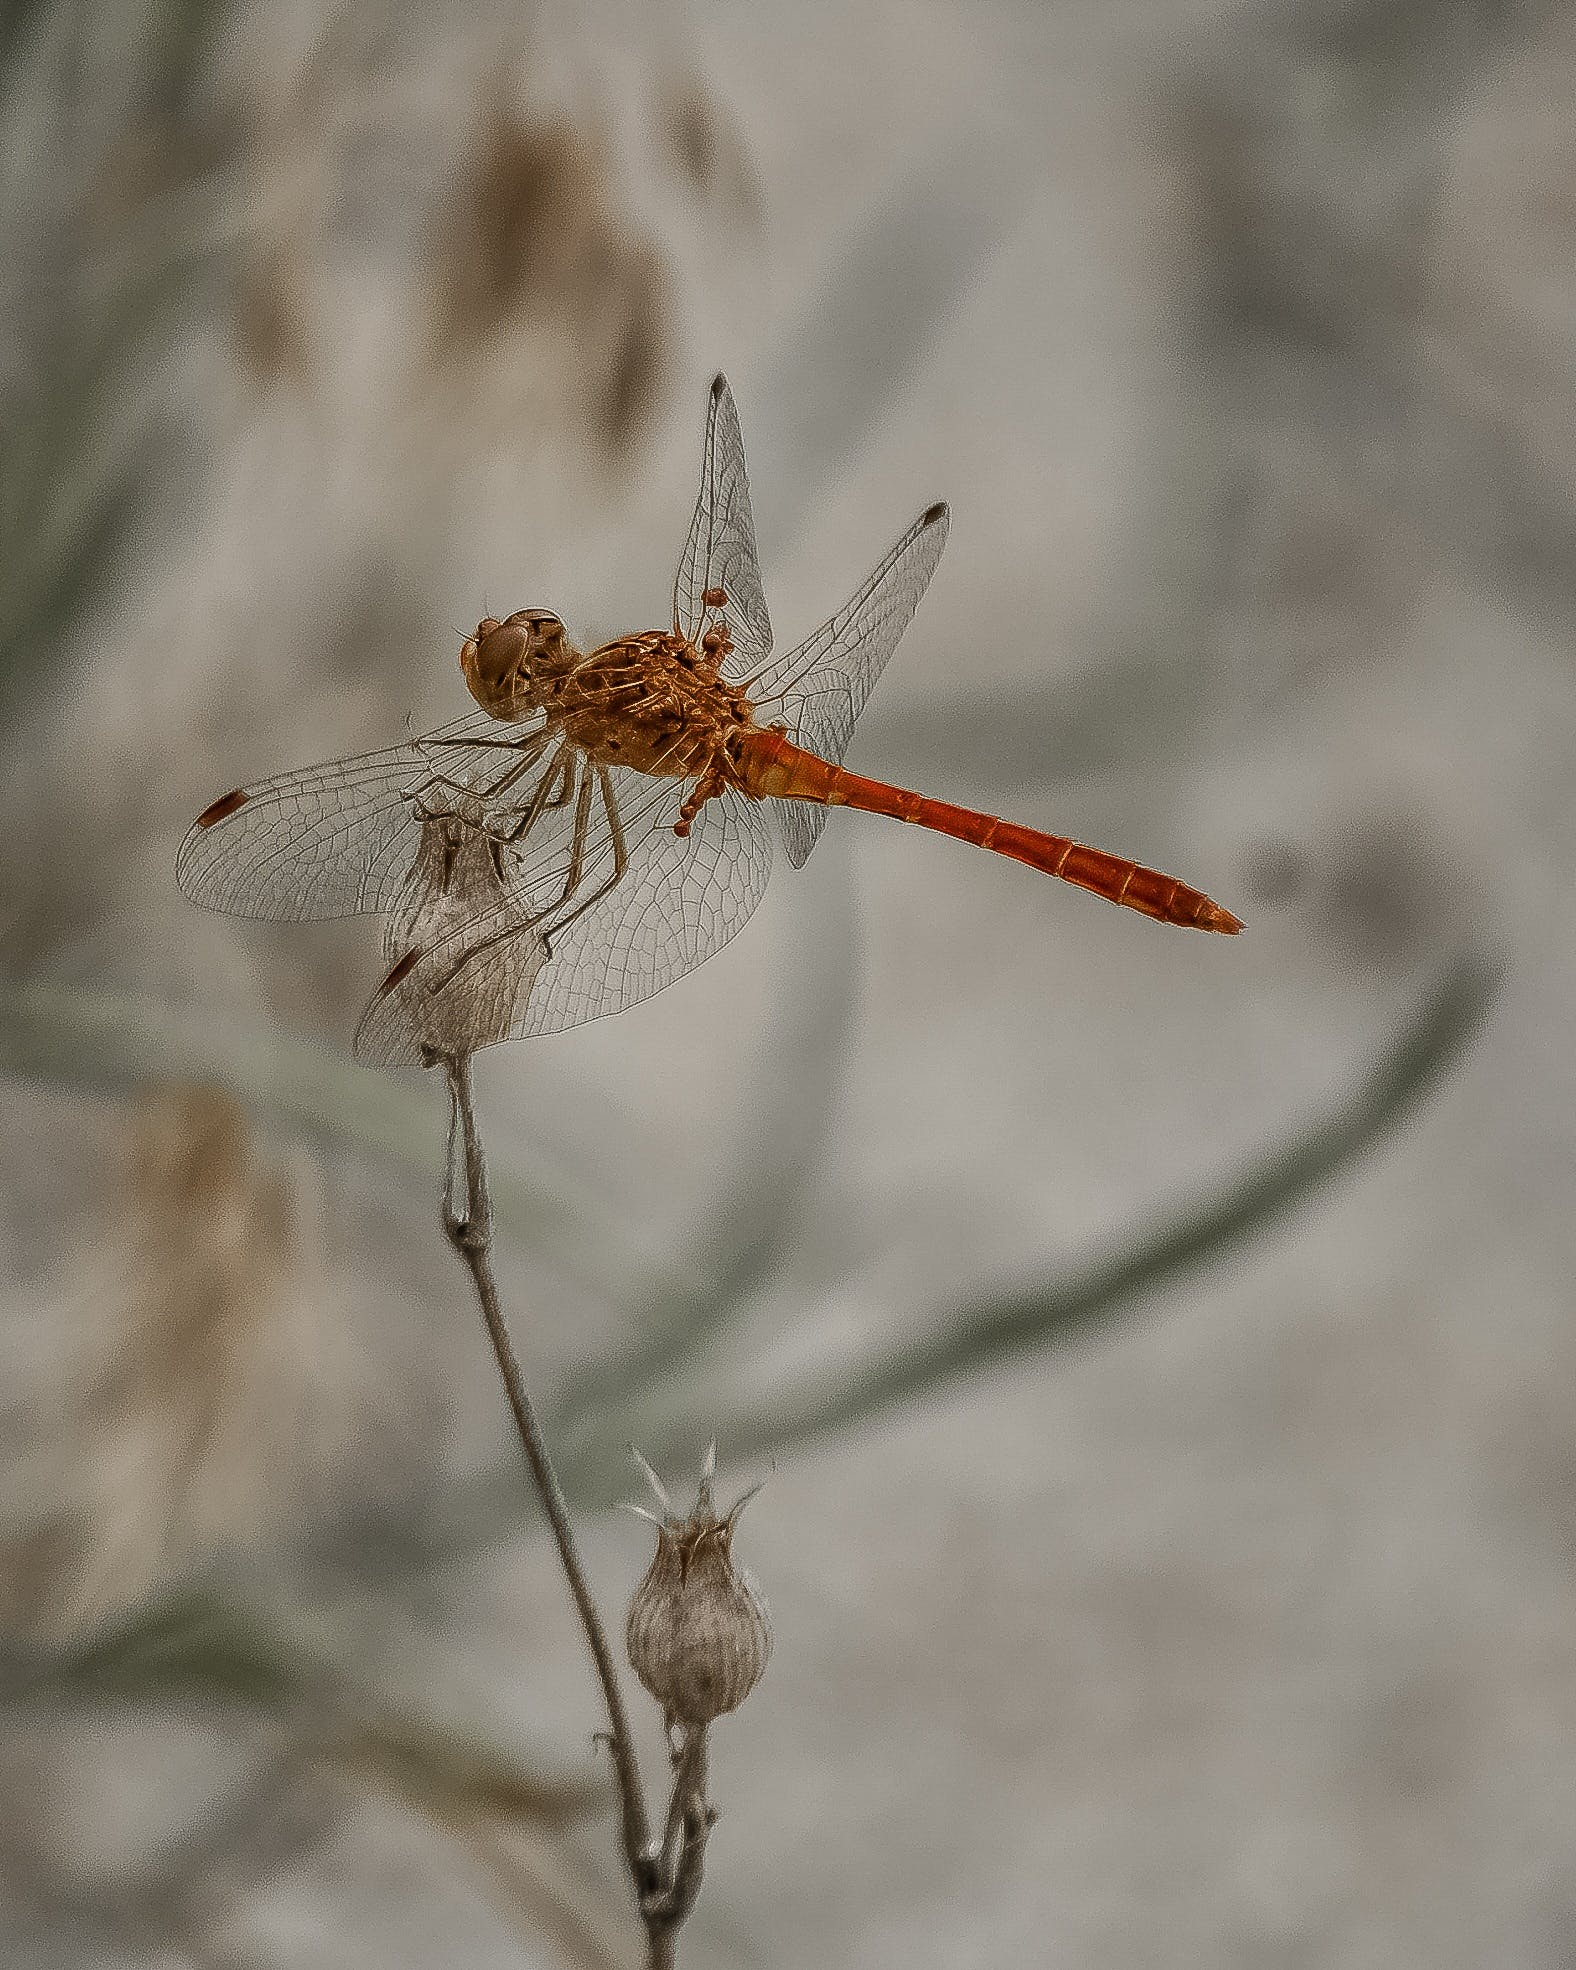 Wandering Glider Dragonfly Perching on White Flower